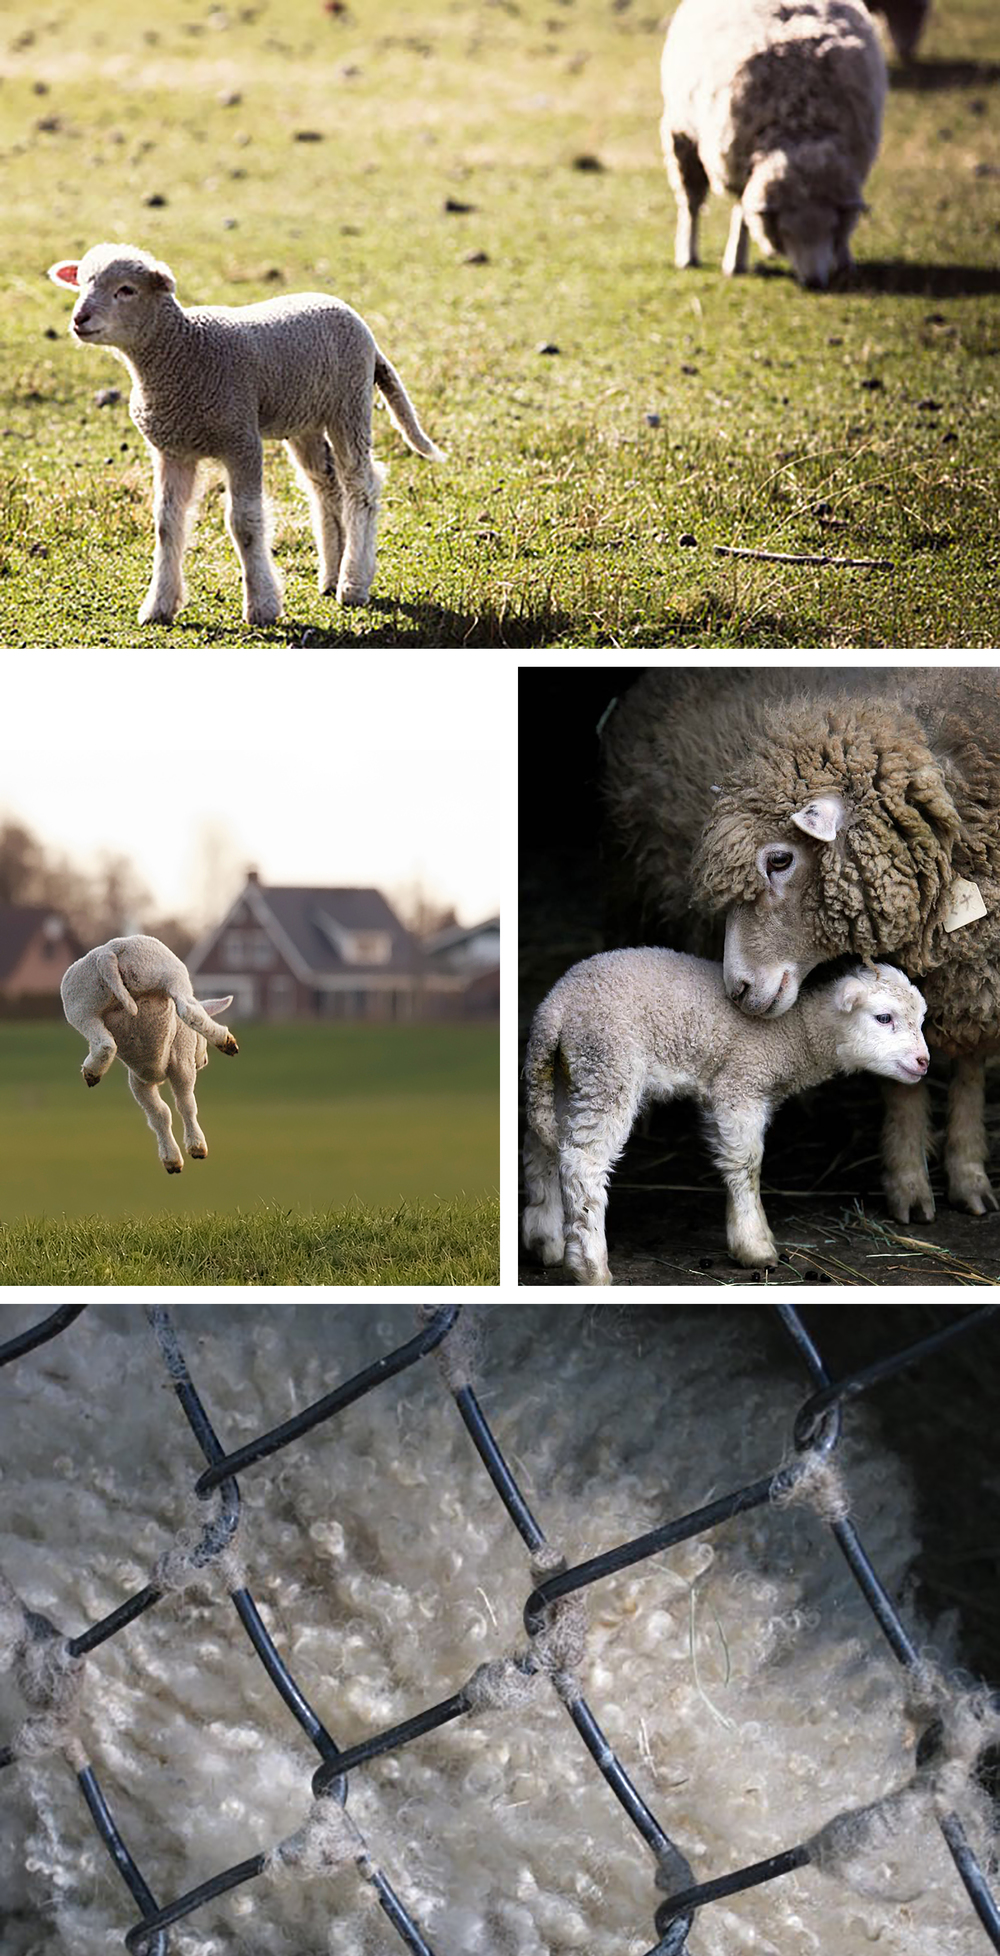 Top to bottom: Sheep in Patagonia from Ann Street Studio; Leaping Lamb; Lamb and its mother via NBC; closeup of a sheep at the Oatland Island Wildlife Center, photo by me.